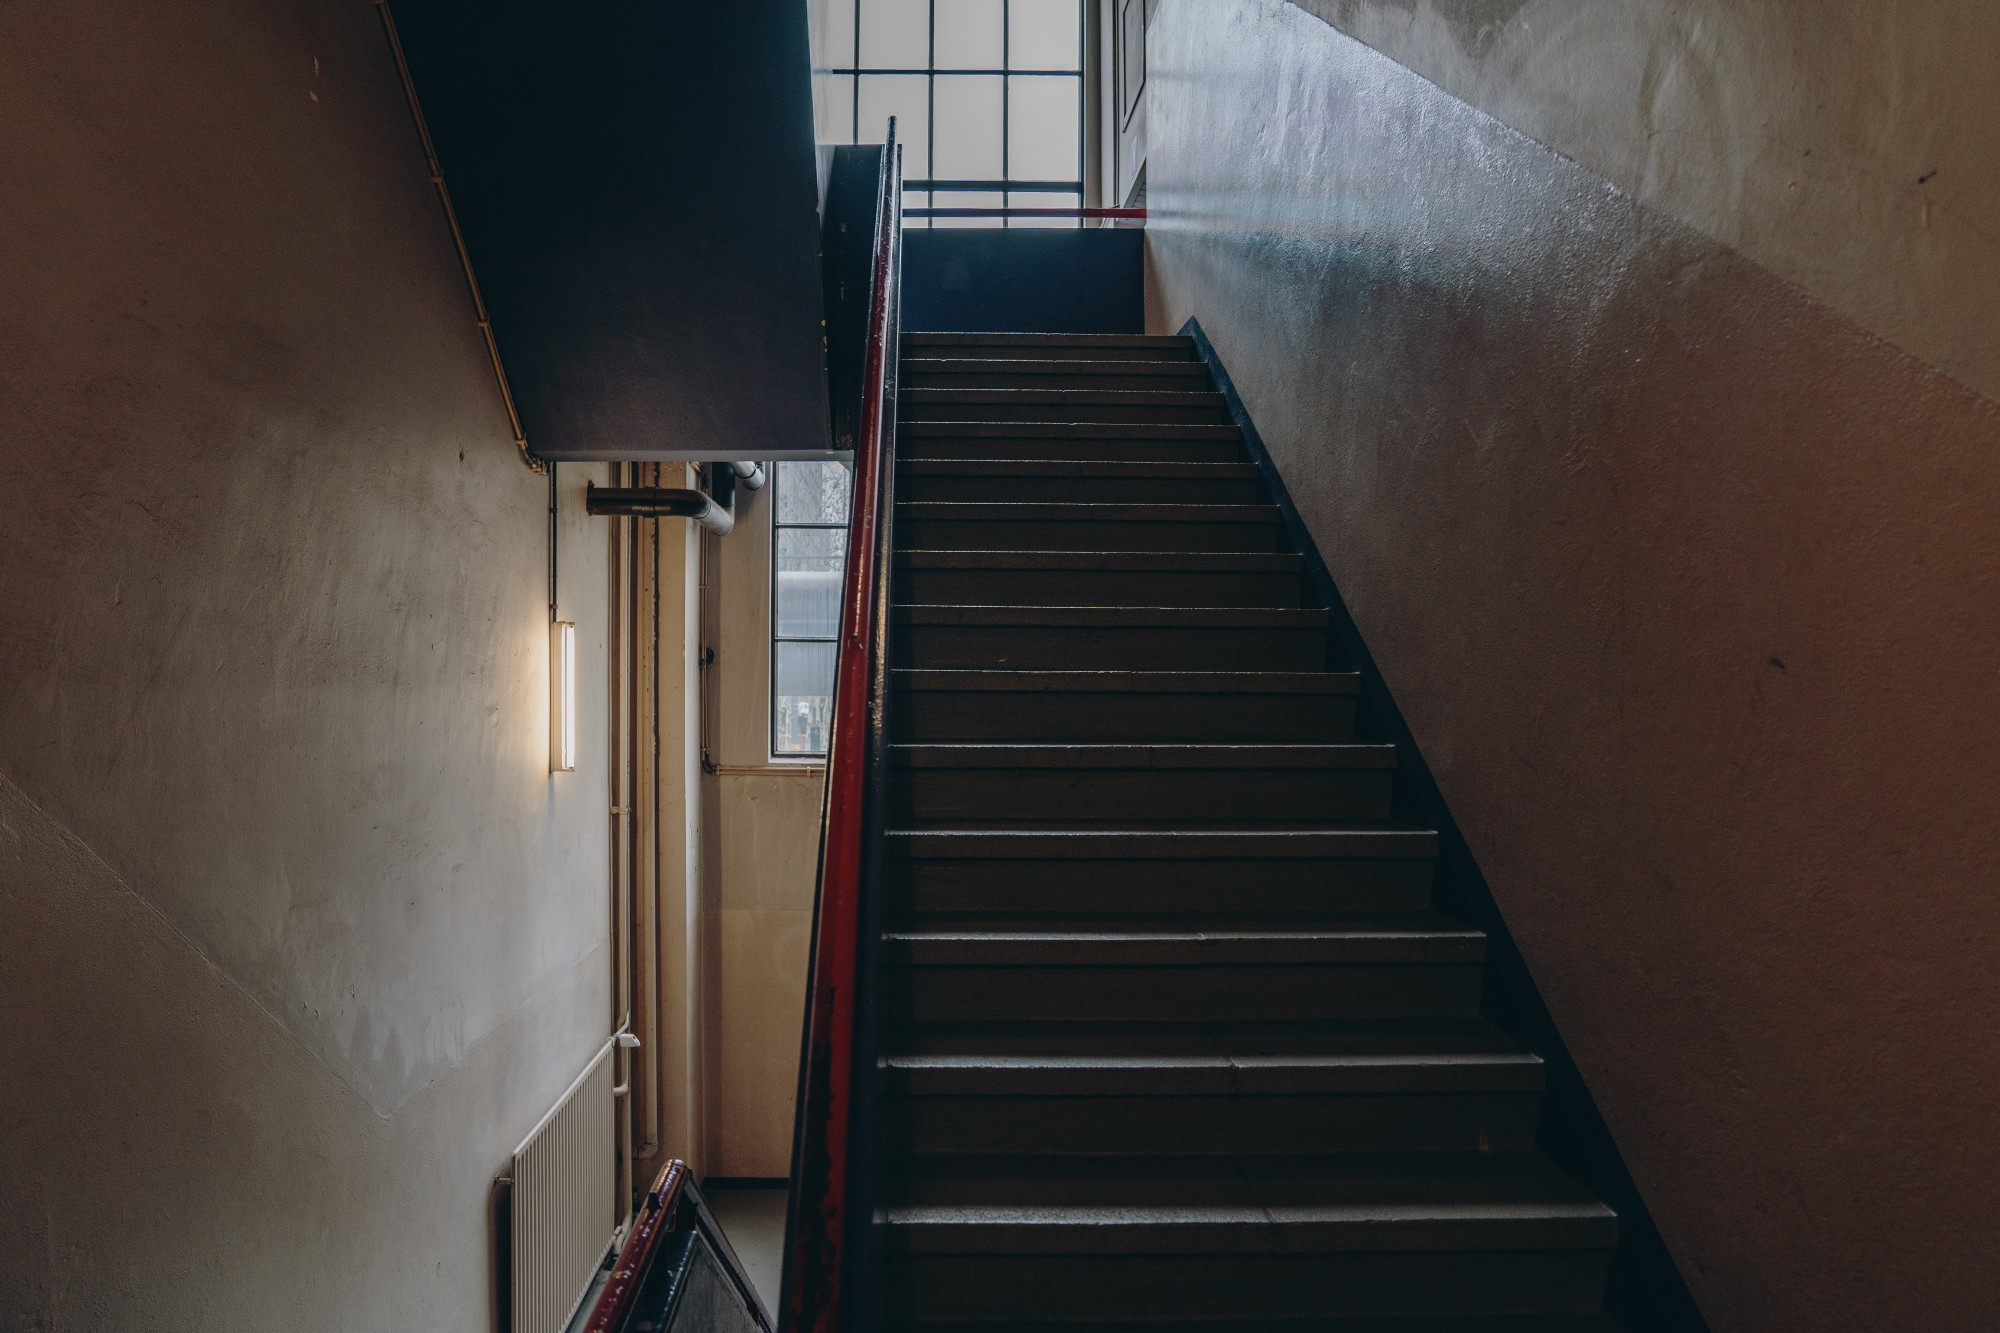 A picture of a staircase to describe the first scene of Scott coming down the stairs.